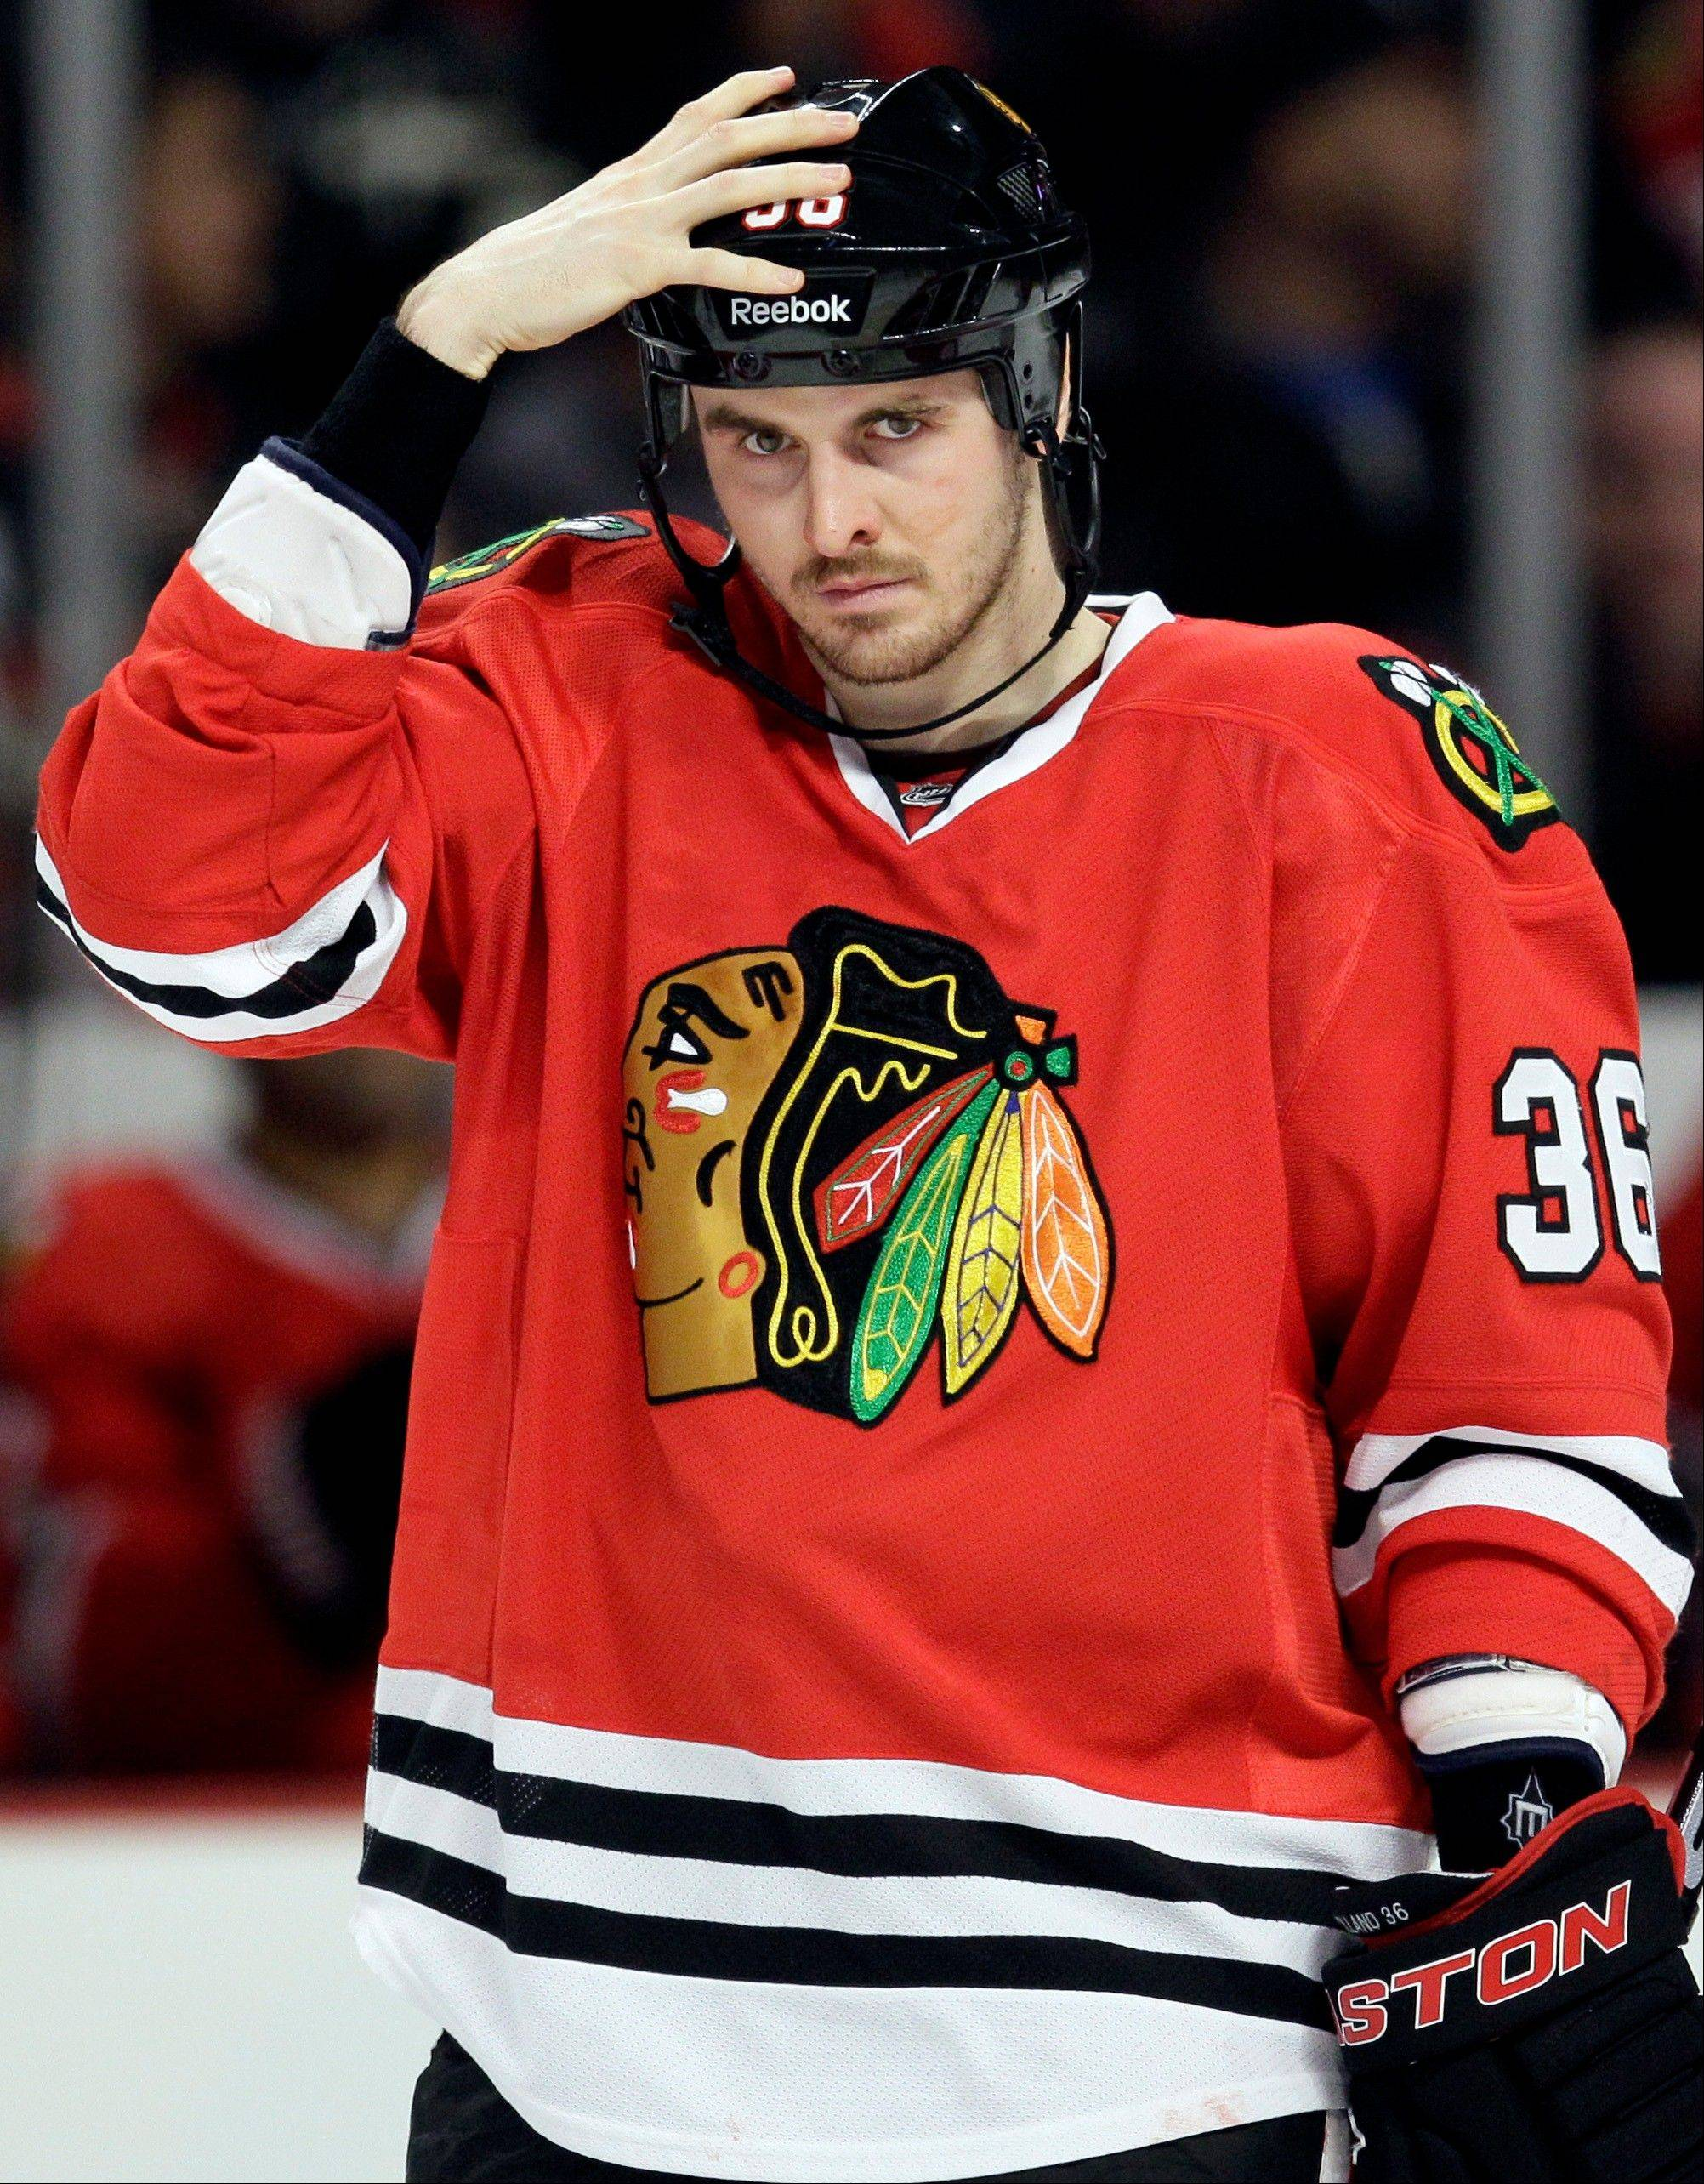 Game 3 on Monday night in Boston was anything but a game to remember for Blackhawks center Dave Bolland. �Yeah, one of those nights,� coach Joel Quenneville admitted. �Tough night.�